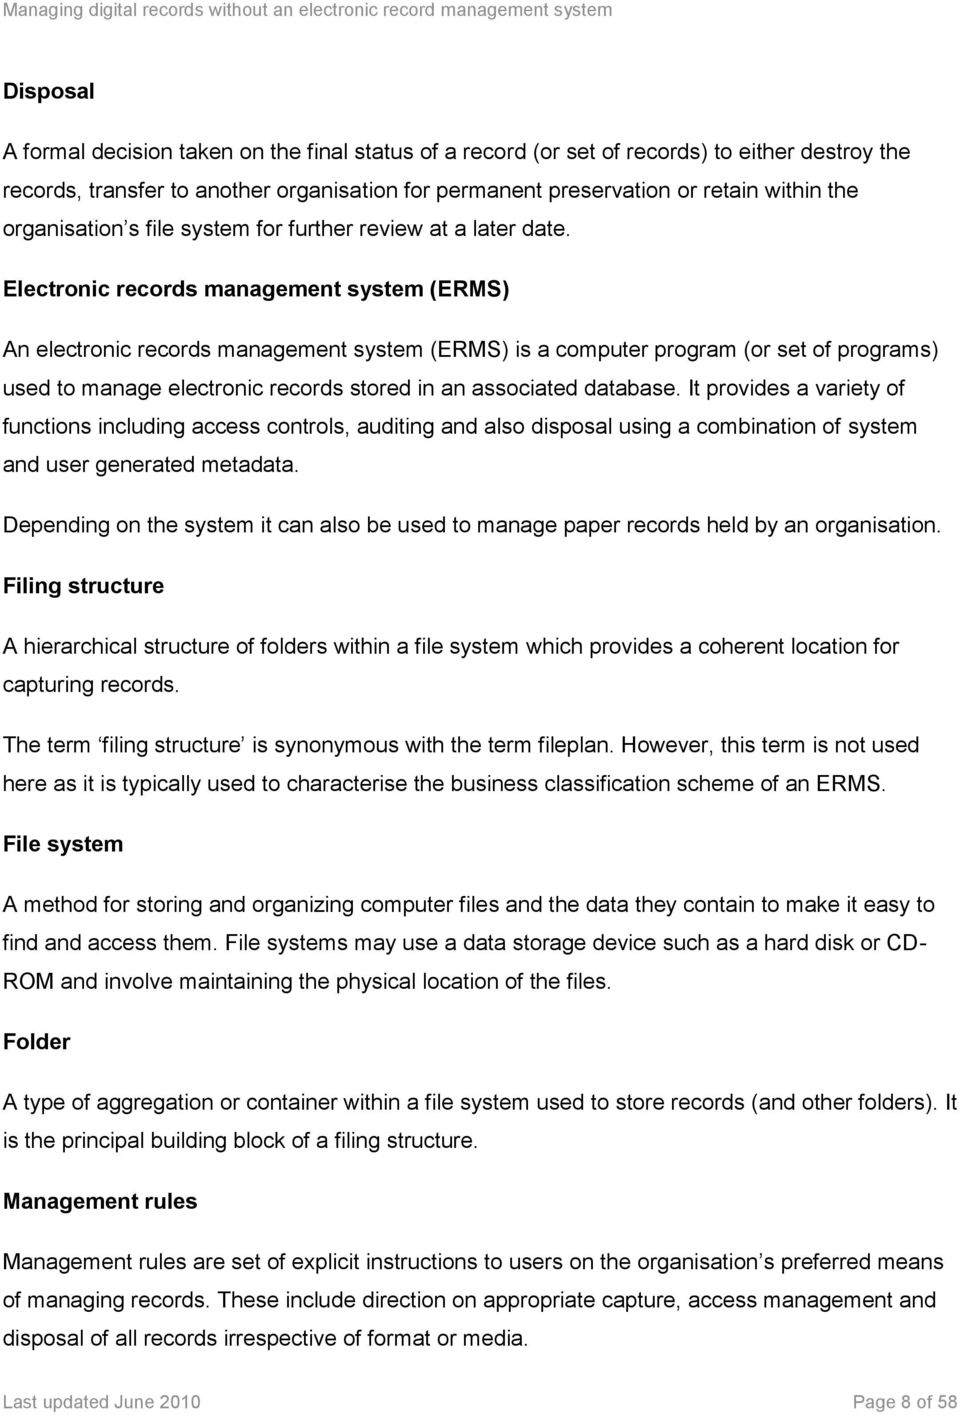 Electronic records management system (ERMS) An electronic records management system (ERMS) is a computer program (or set of programs) used to manage electronic records stored in an associated